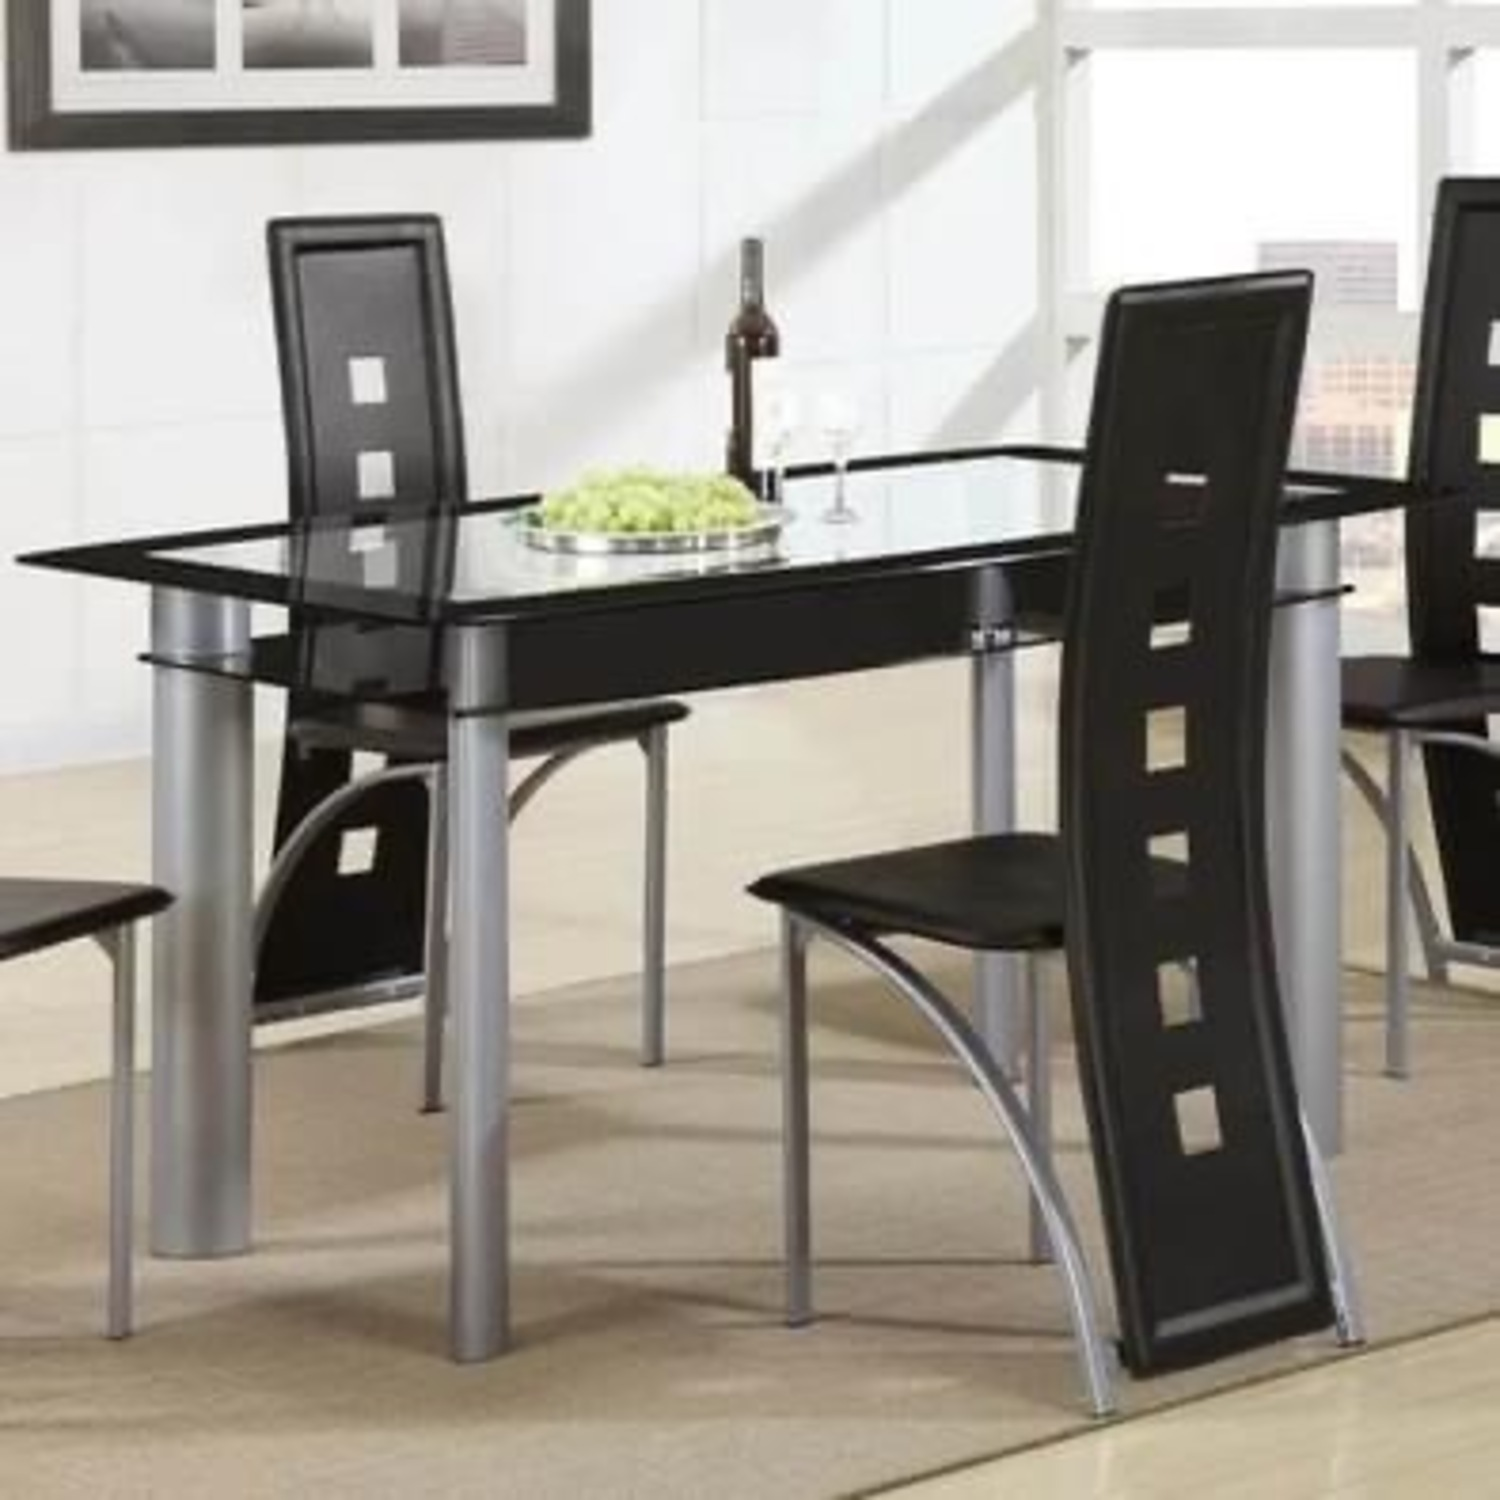 Wayfair Black Dining Table Set with Chairs - image-3